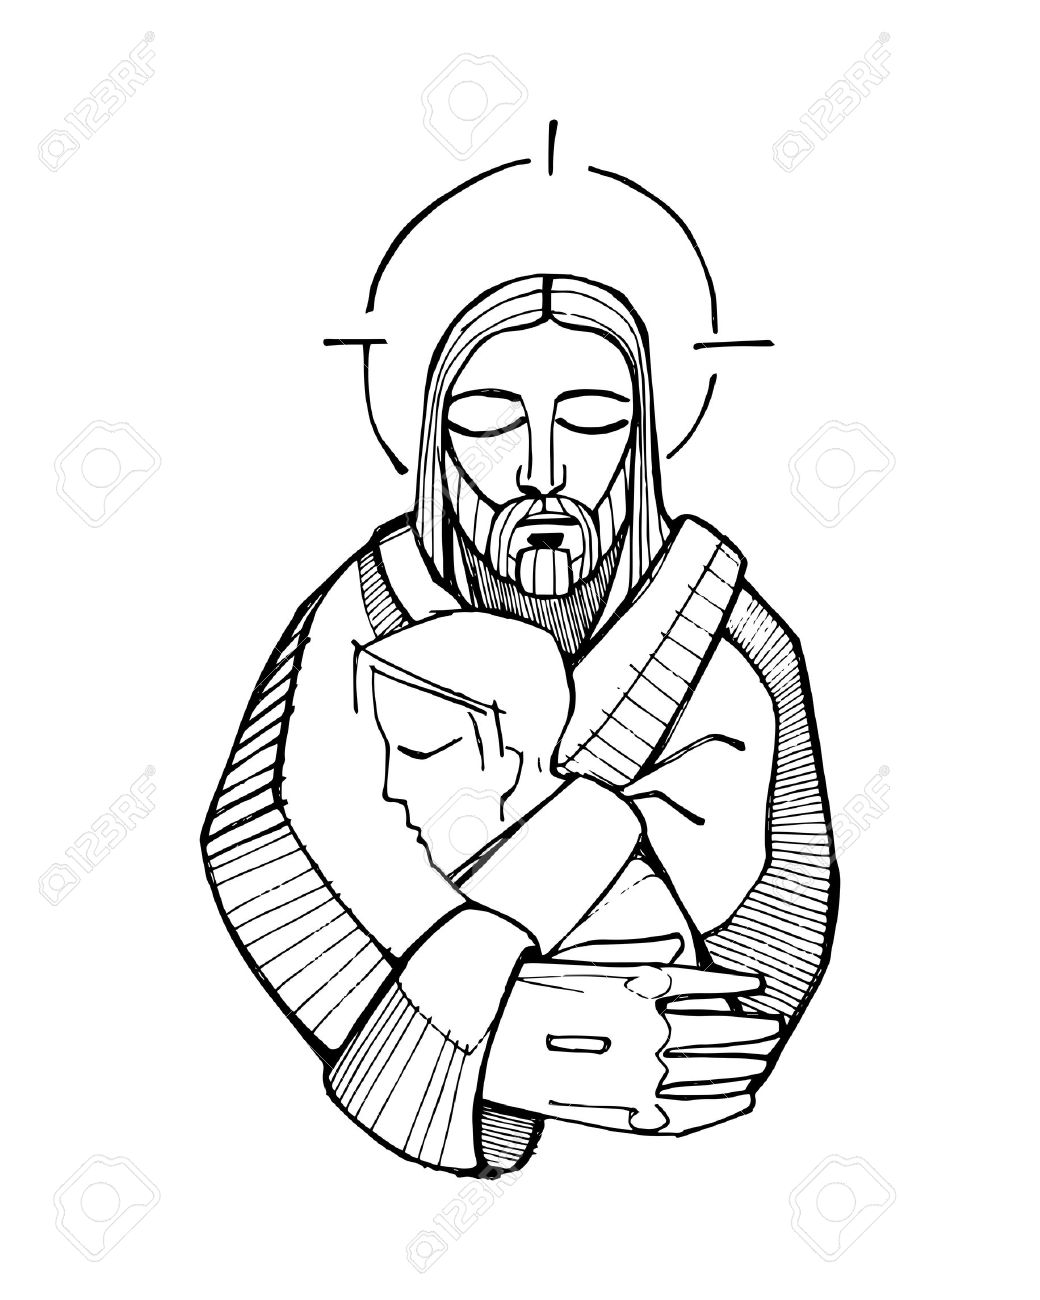 hand drawn vector illustration or drawing of jesus christ hugging